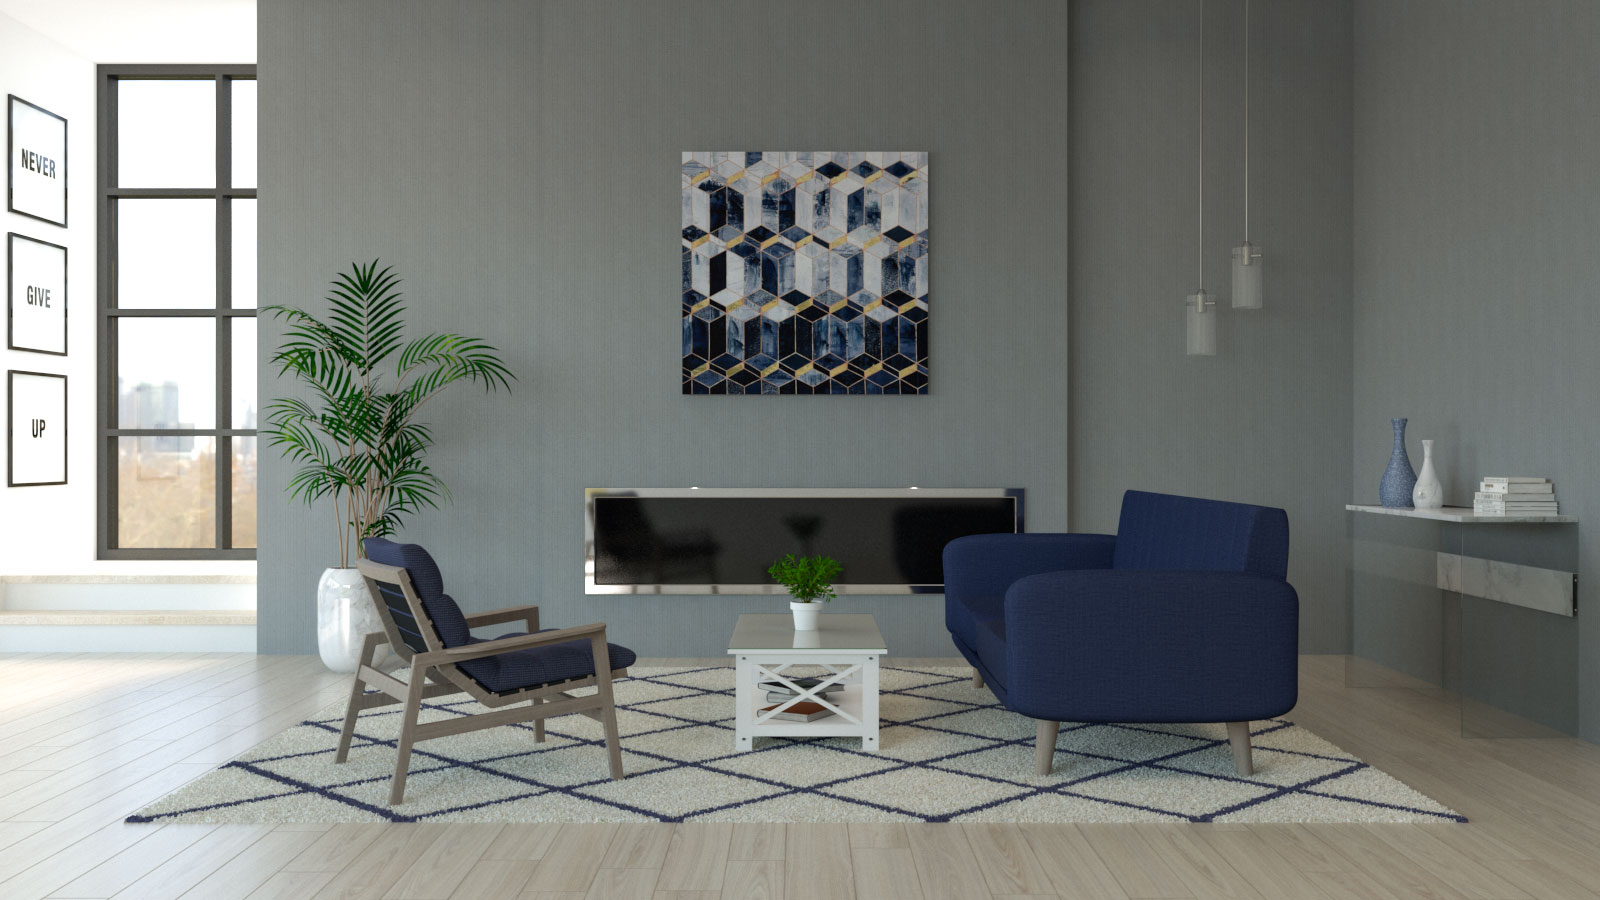 Living room with navy blue furniture and gray walls - What color furniture goes with gray walls